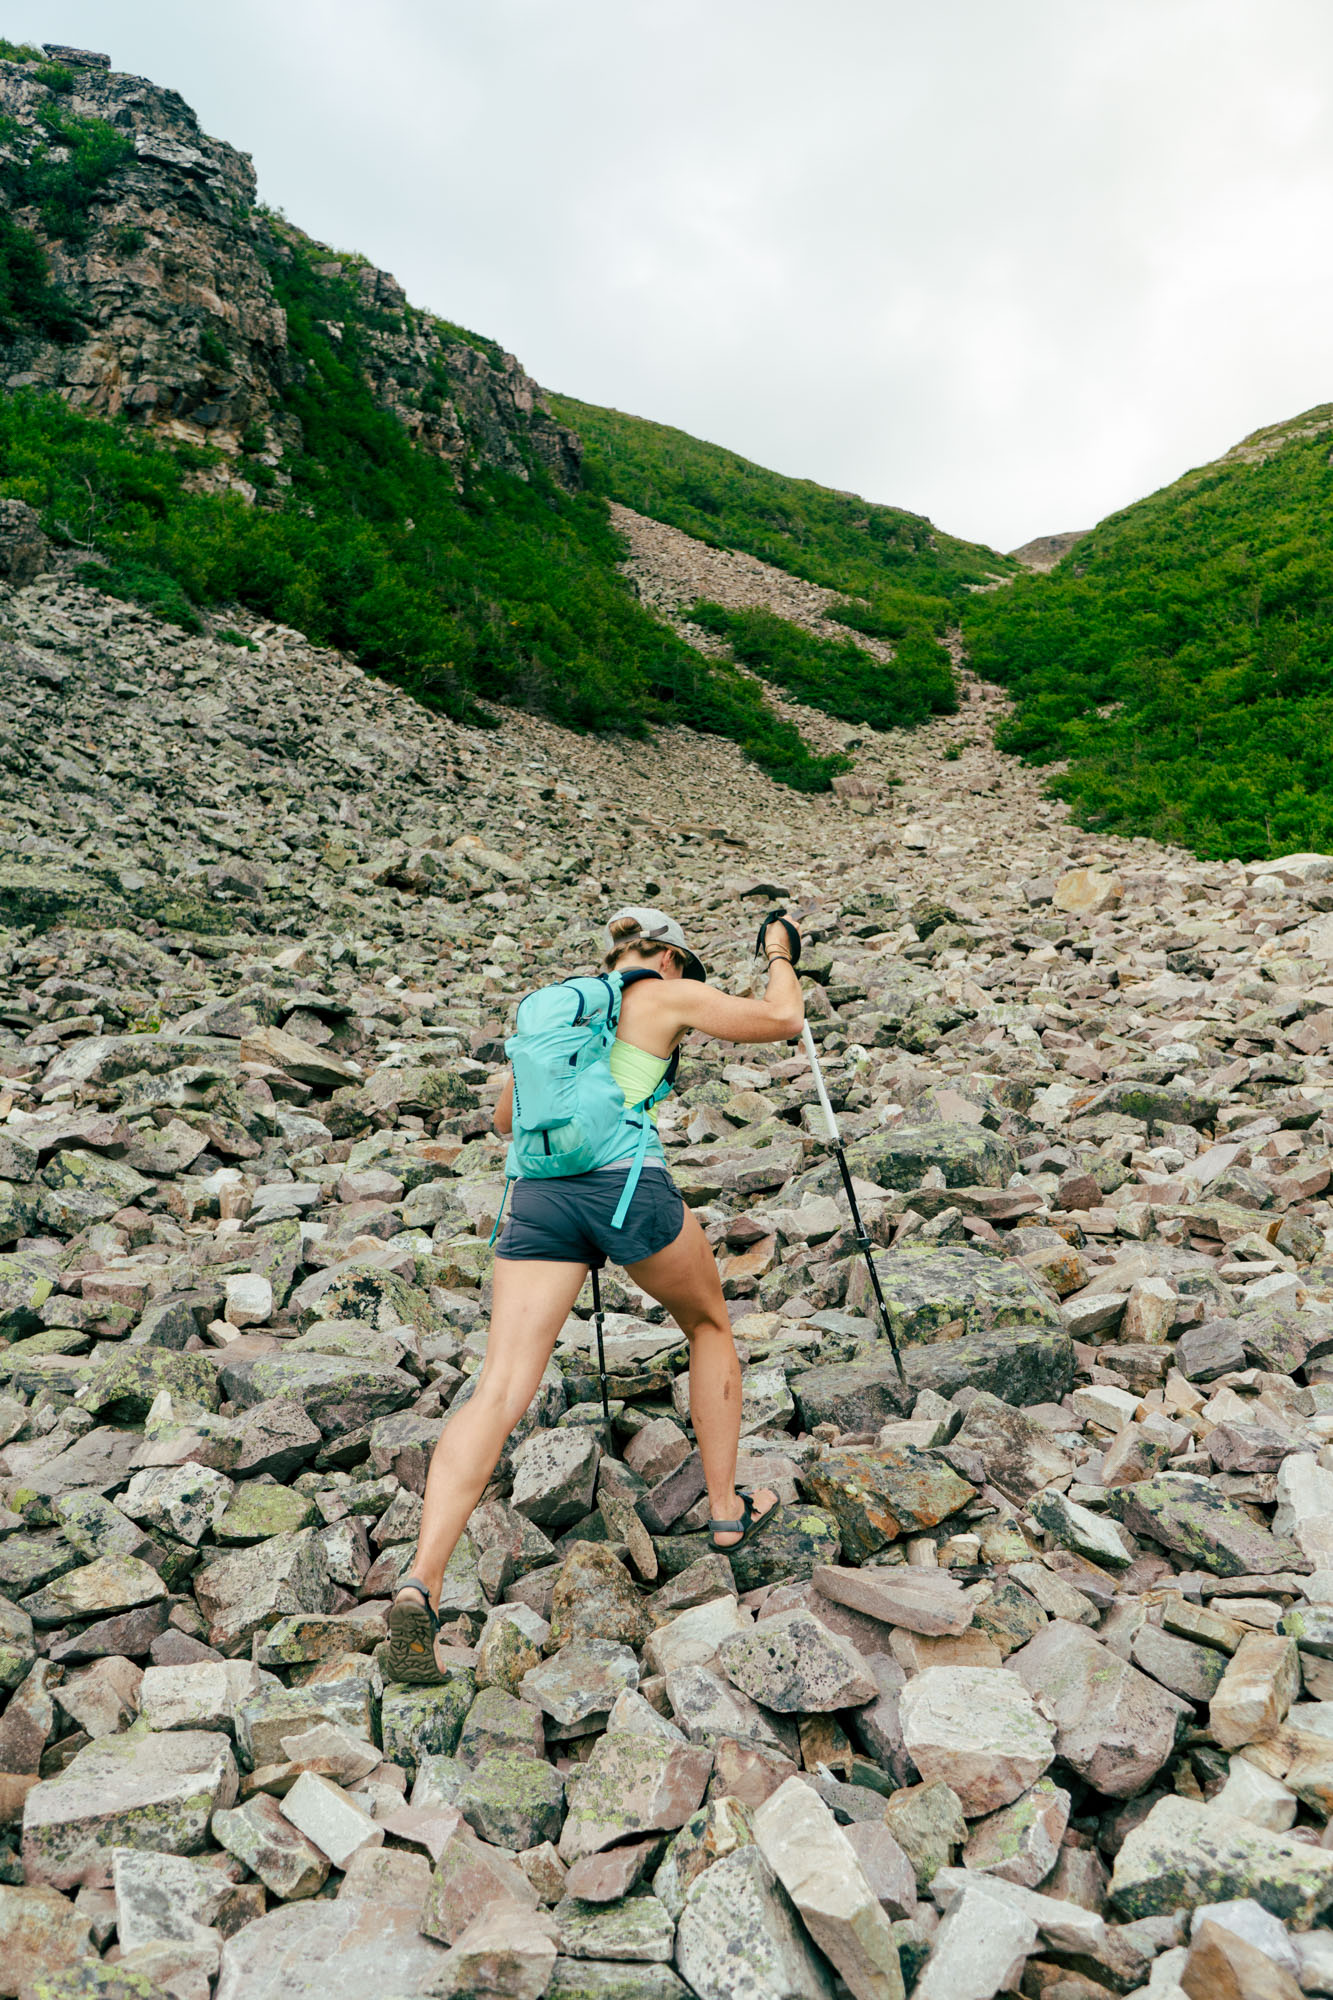 MAK climbing the 500m in elevation gain to the summit of Gros Morne